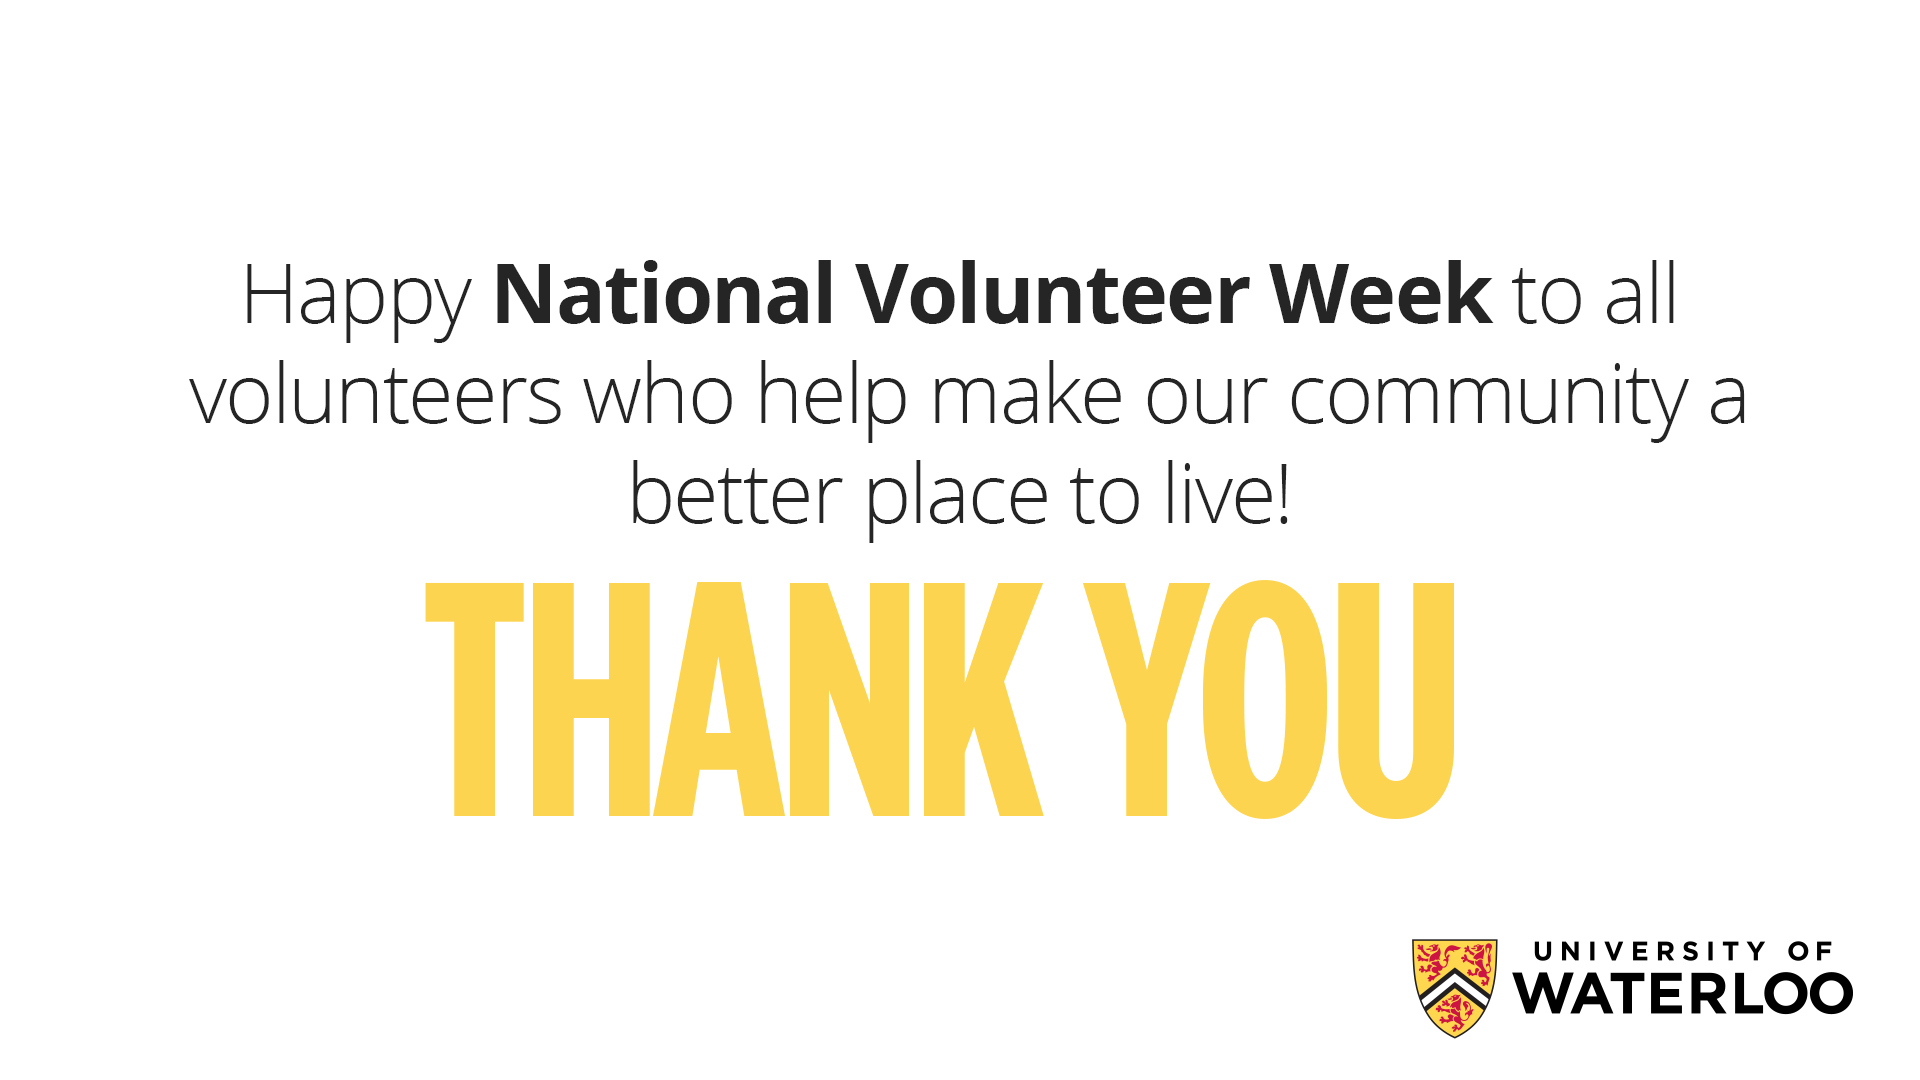 Thank you to all volunteers who help make our community a better place to live! THANK YOU